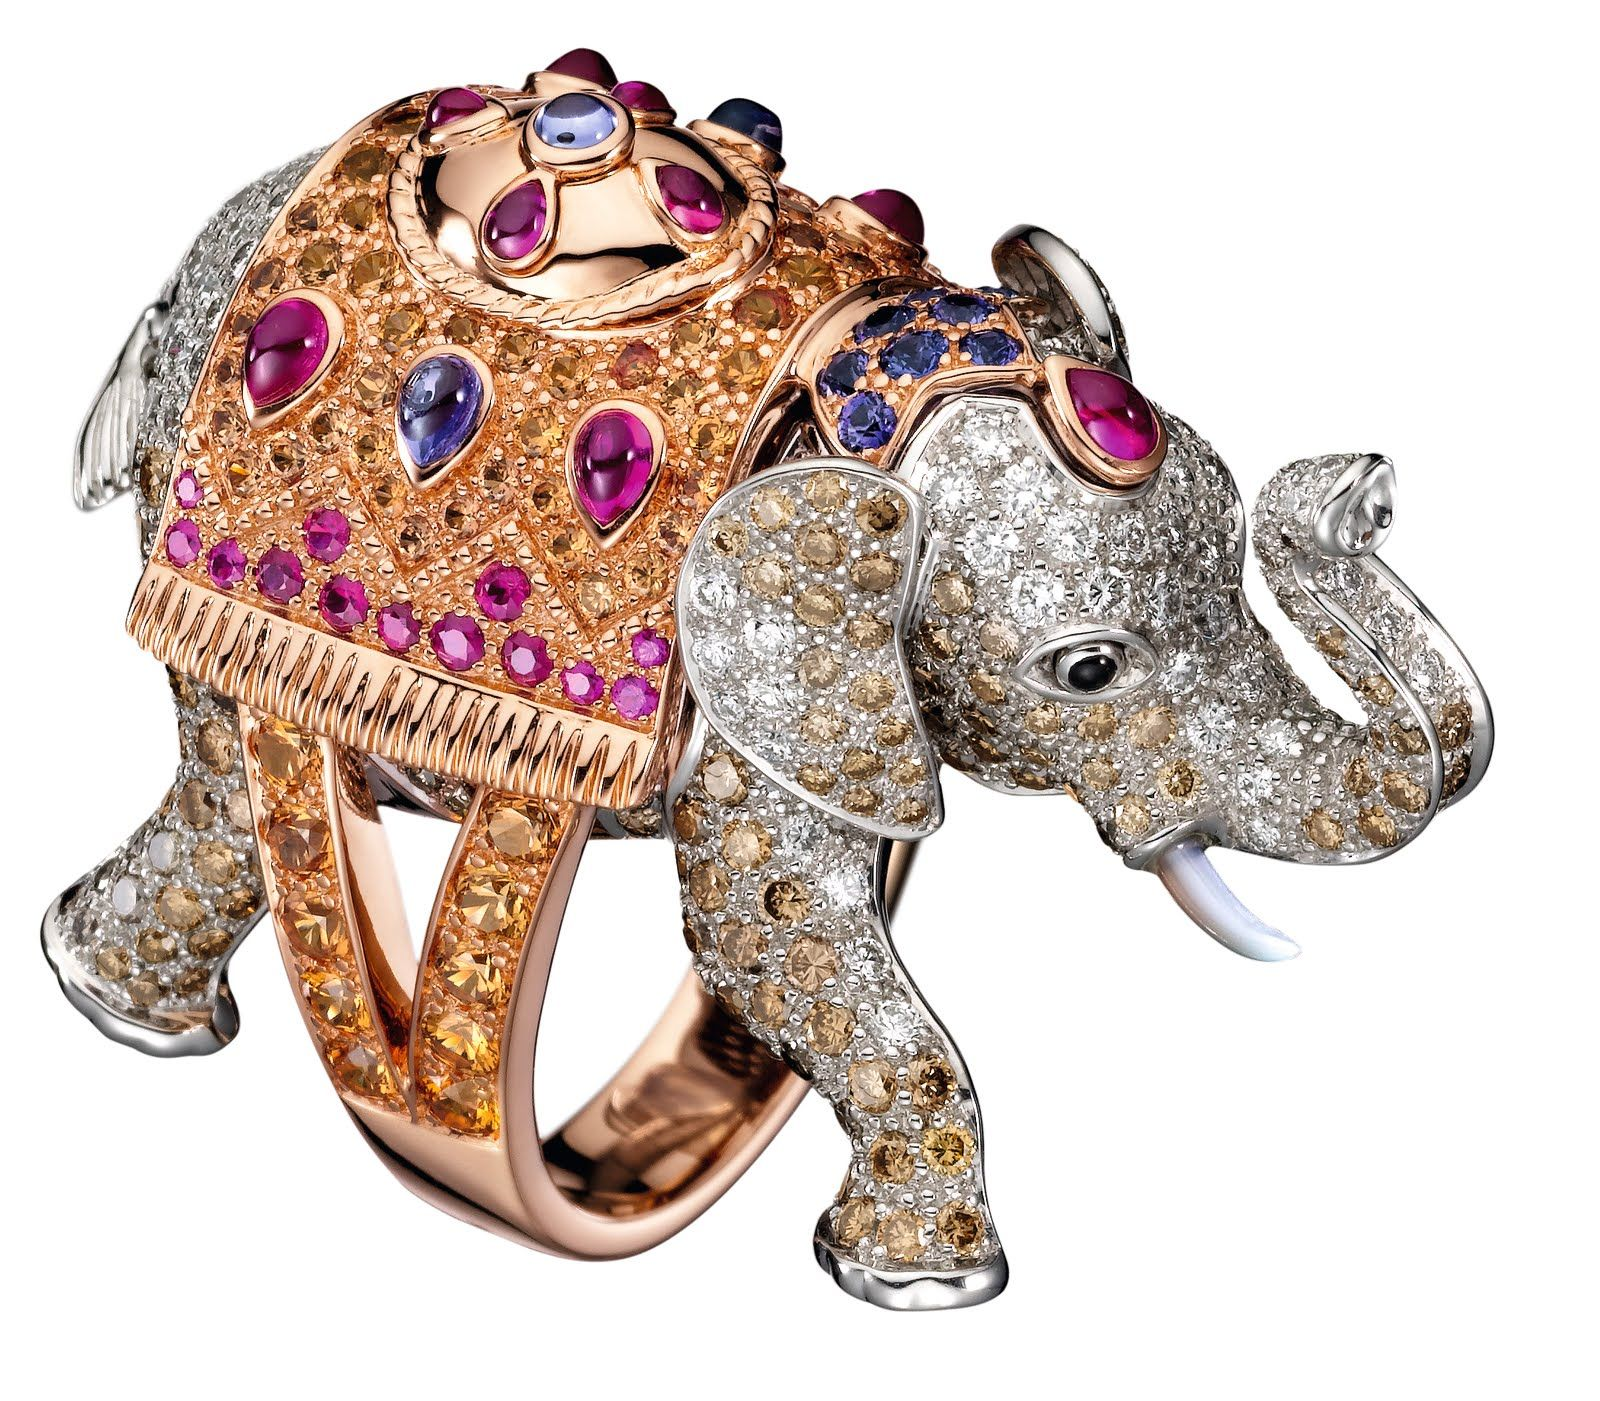 de4fa9ac87e4e7 Jewelry with animals, Boucheron | My Favorite Jewery & Watches ...